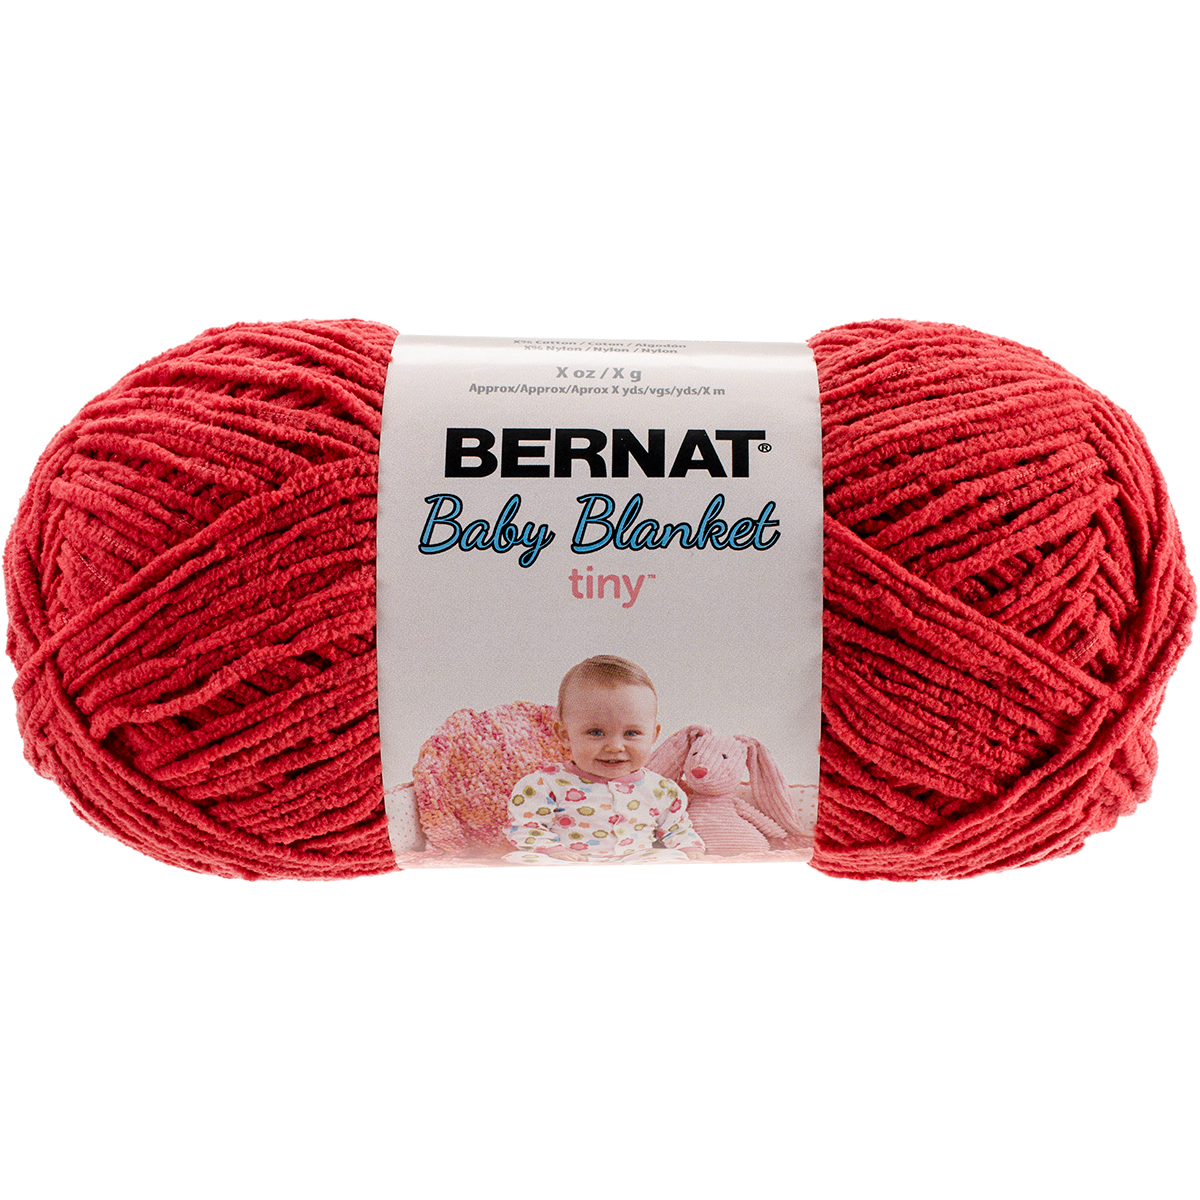 Bernat Baby Blanket Tiny Yarn-Red Barn